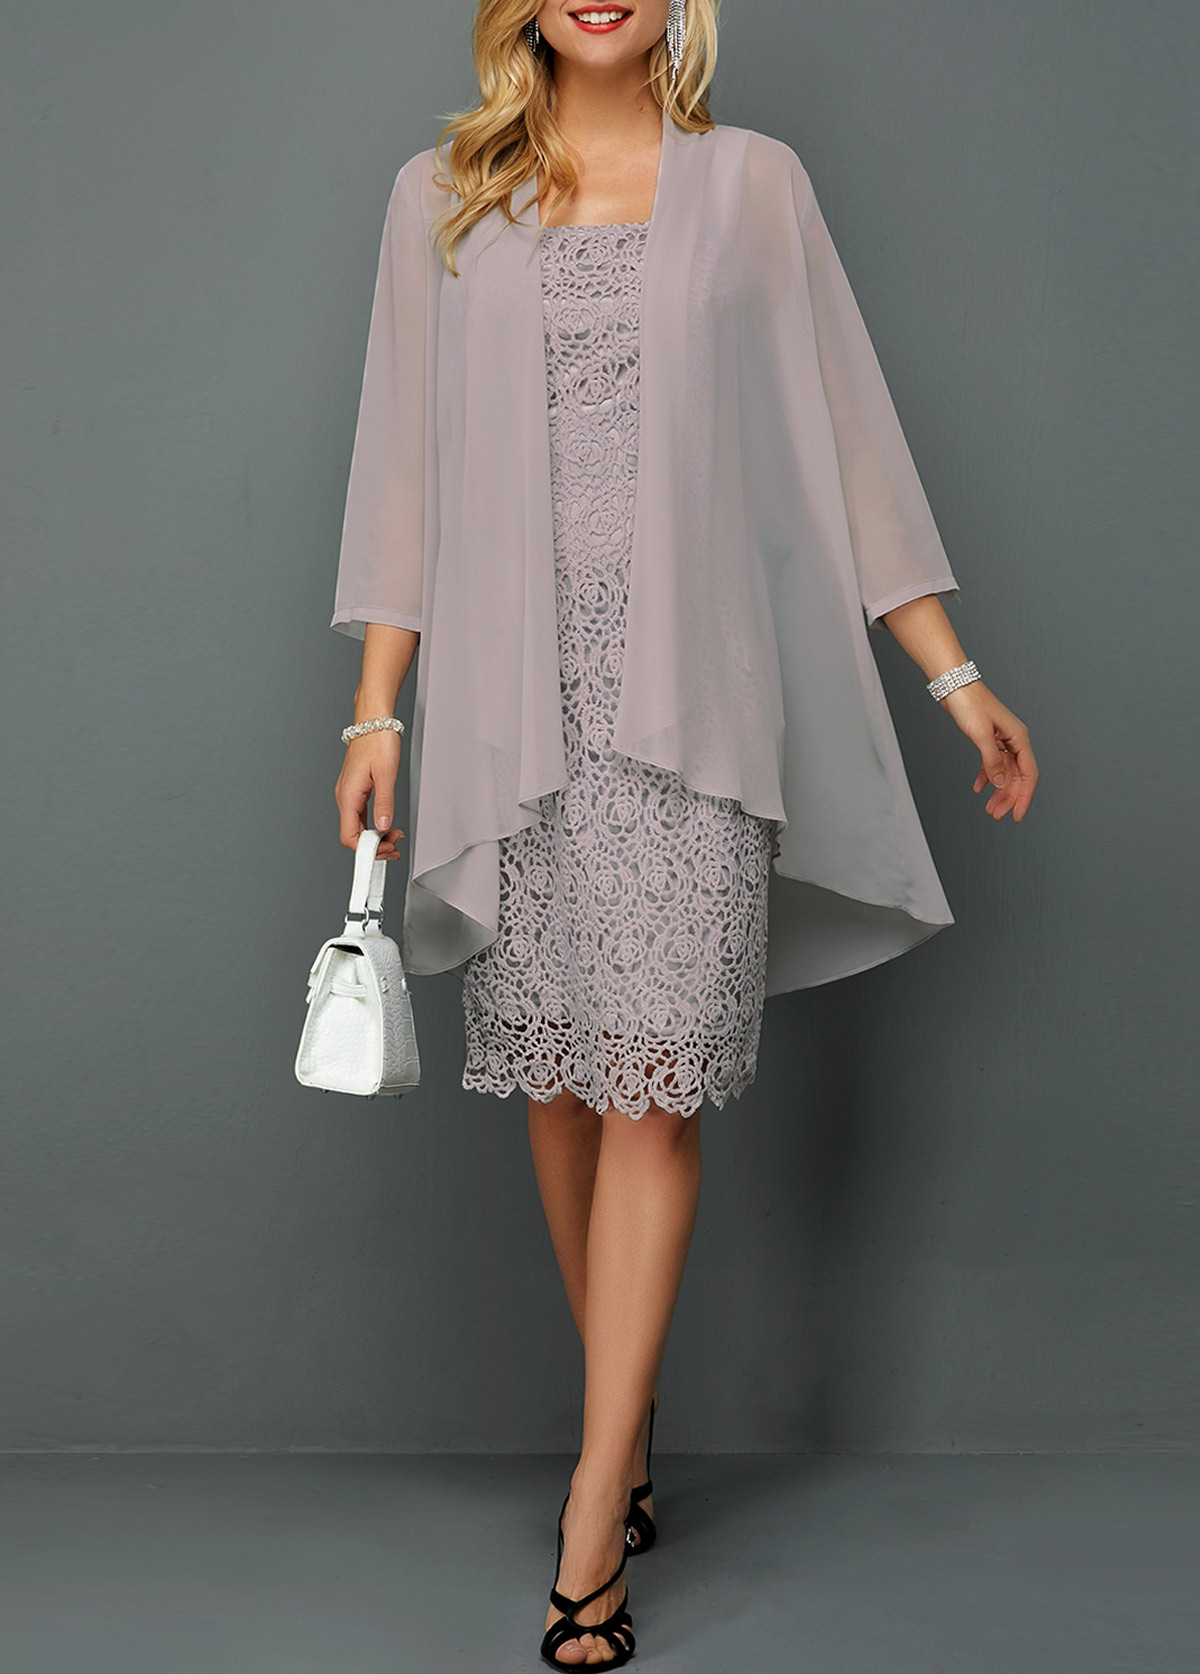 Chiffon Cardigan and Sleeveless Lace Dress